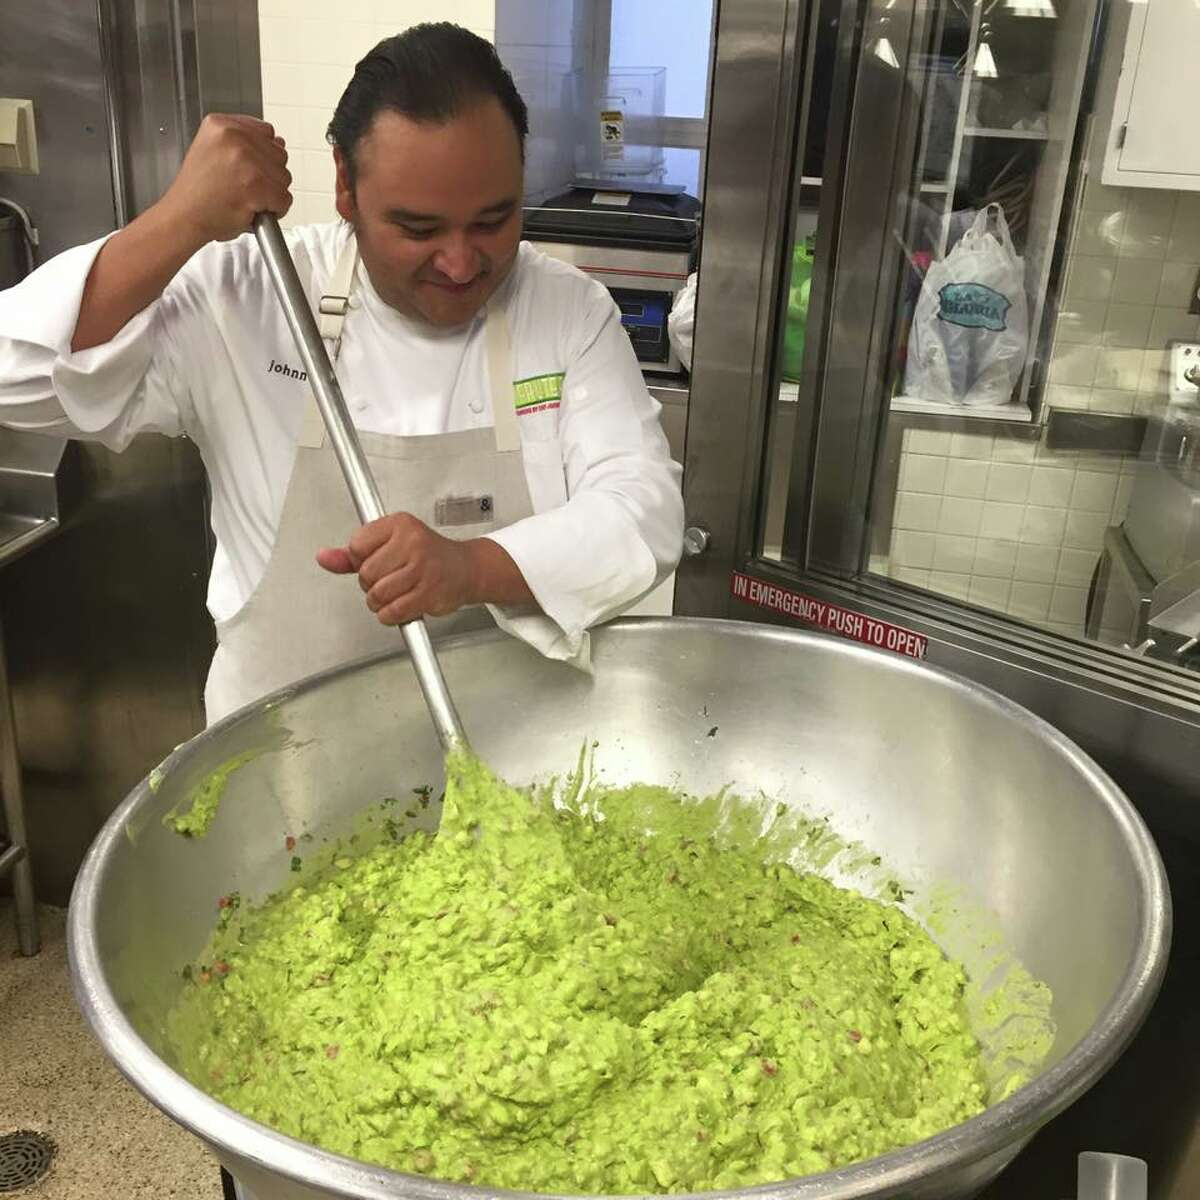 San Antonio chef Johnny Hernandez prepares food at the White House for the First Family's Cinco de Mayo fiesta on May 5, 2016.